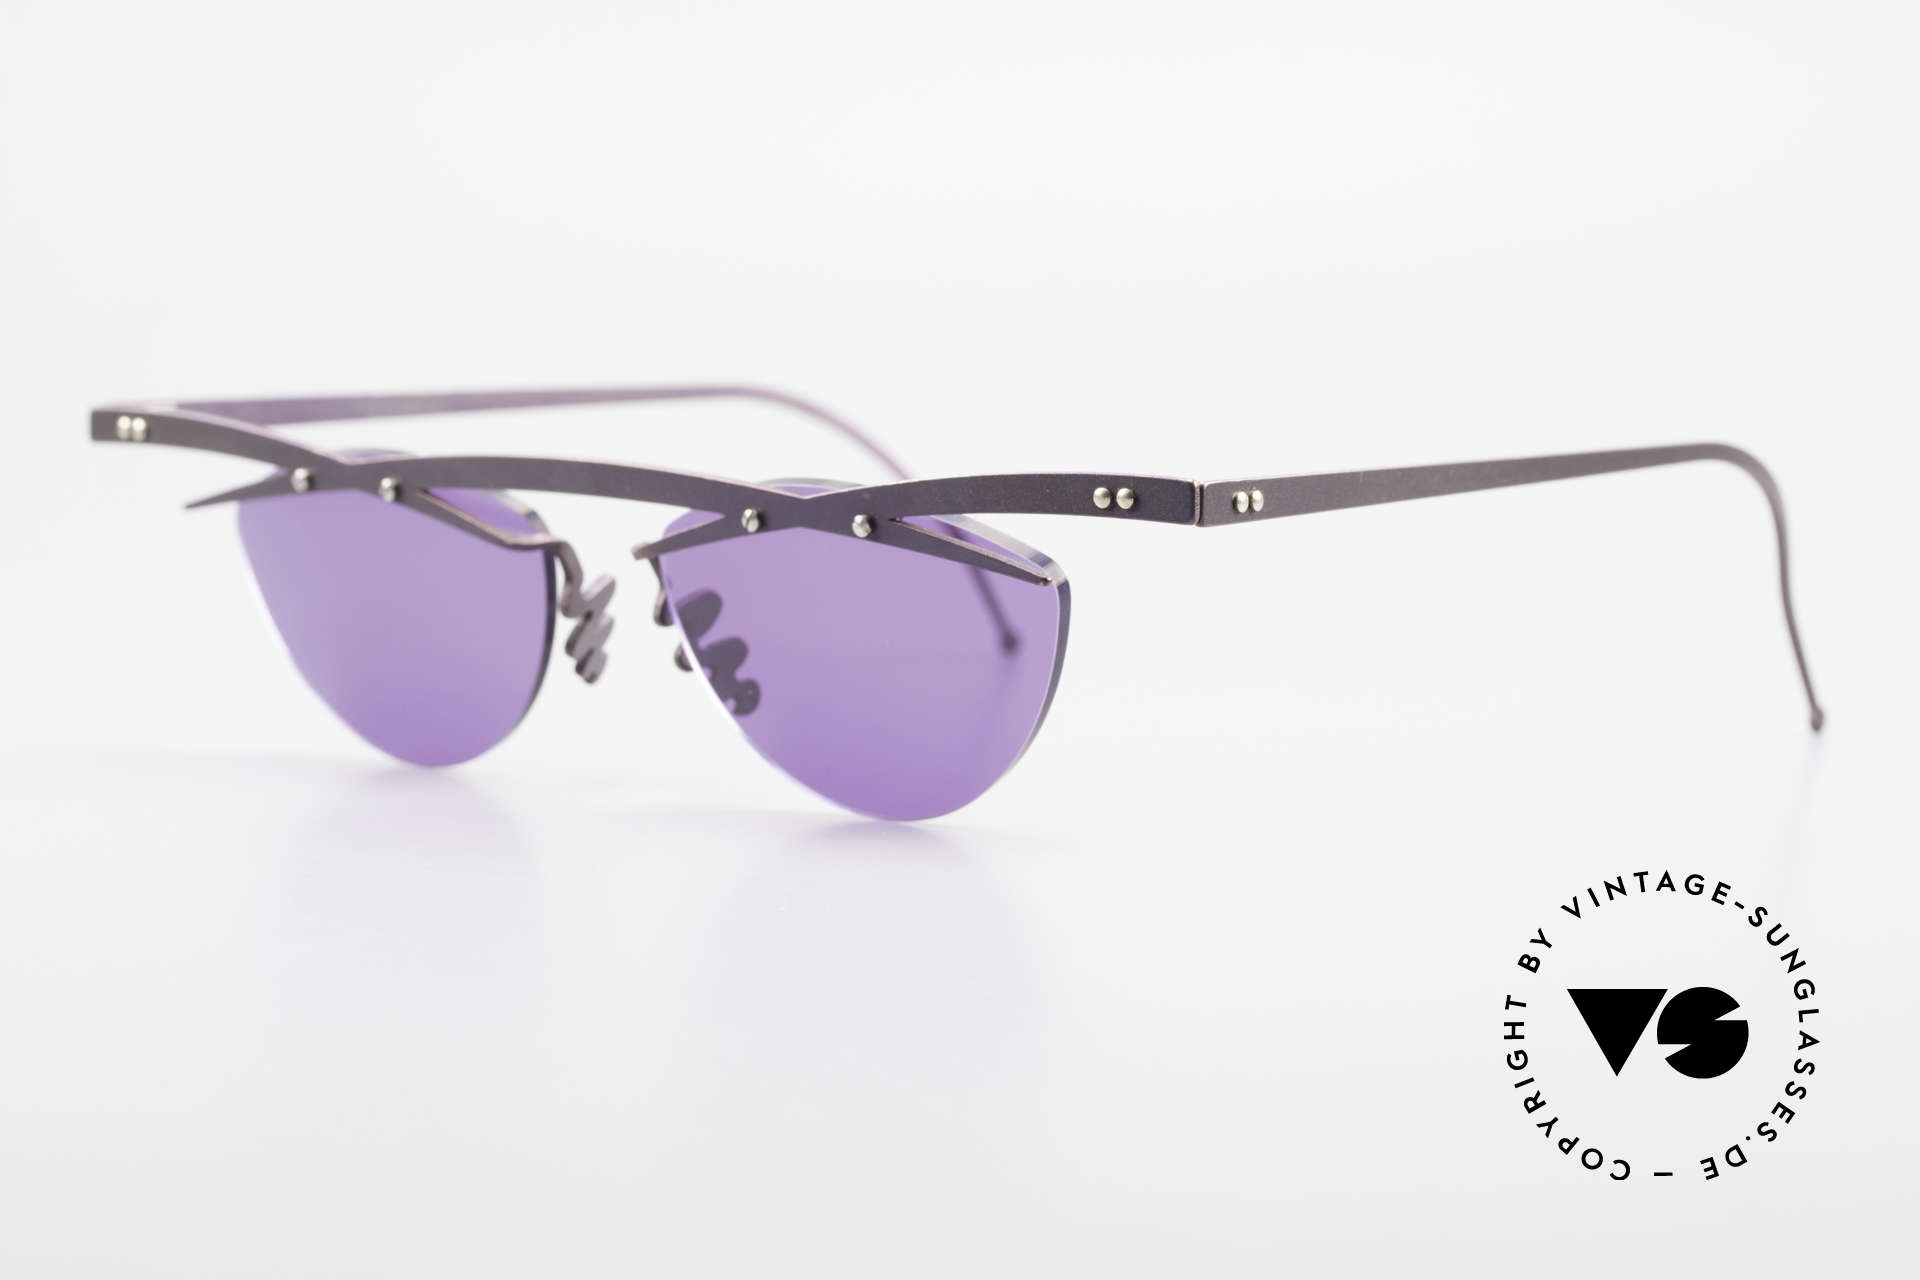 Theo Belgium Tita III 4 XL Crazy Vintage Sunglasses, TITA SERIES = XL titanium frames by Theo from the 90's, Made for Men and Women